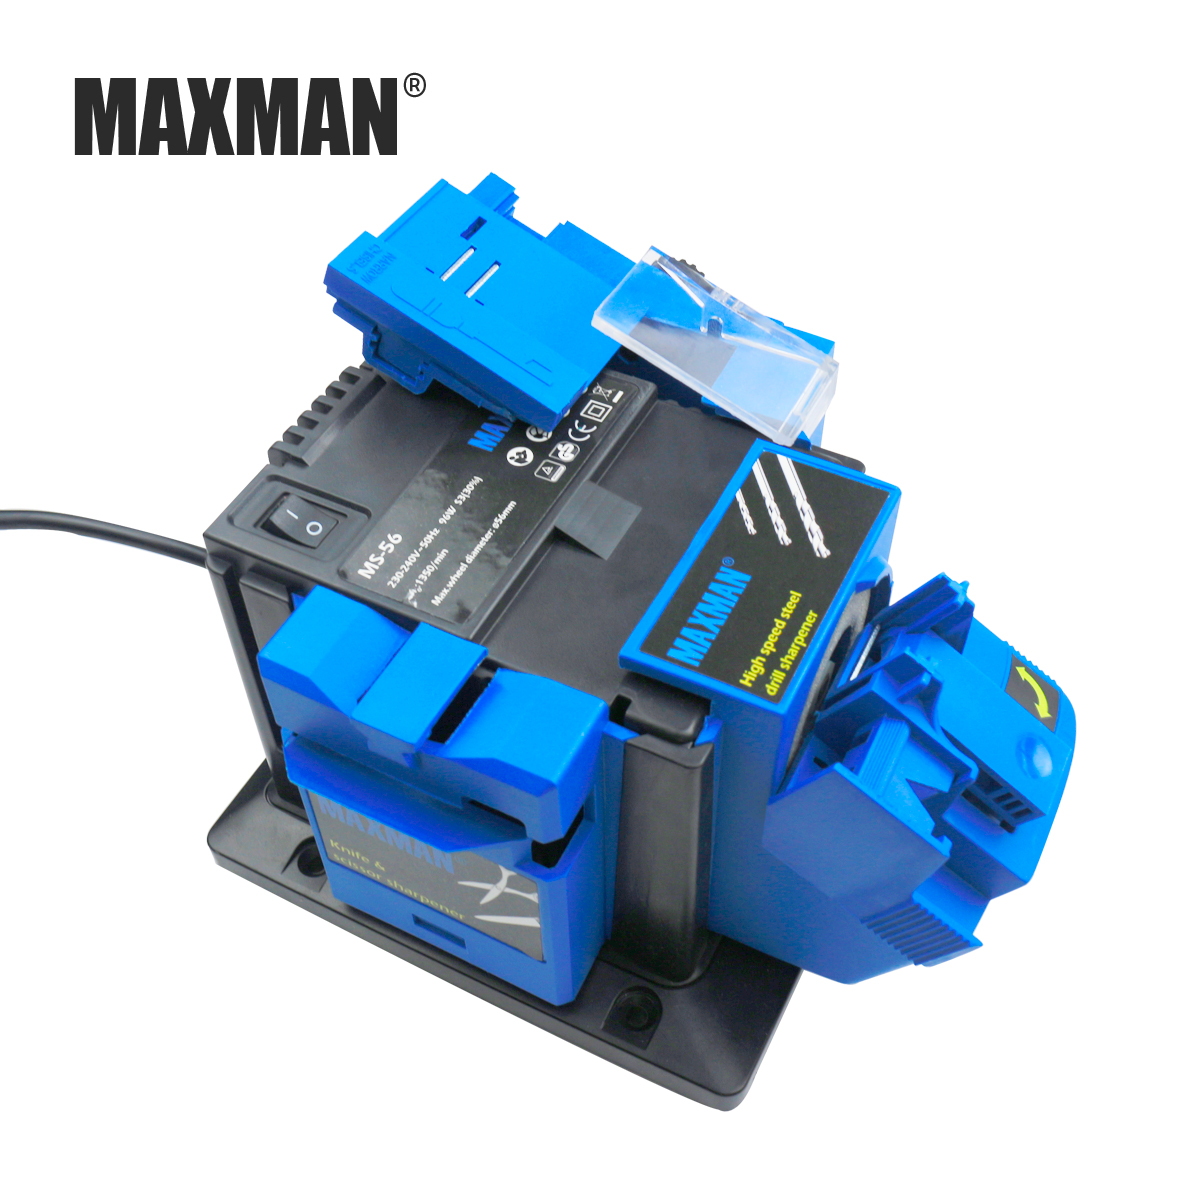 MAXMAN Professional Electric Knife & Scissors Sharpener Chisel & Plane & HSS Drill Sharpening Machine for Kitchen Knives Tool portable electric knife tool drill sharpener sharpening drill adjustable multitool knife sharpener sharpening tool power tool